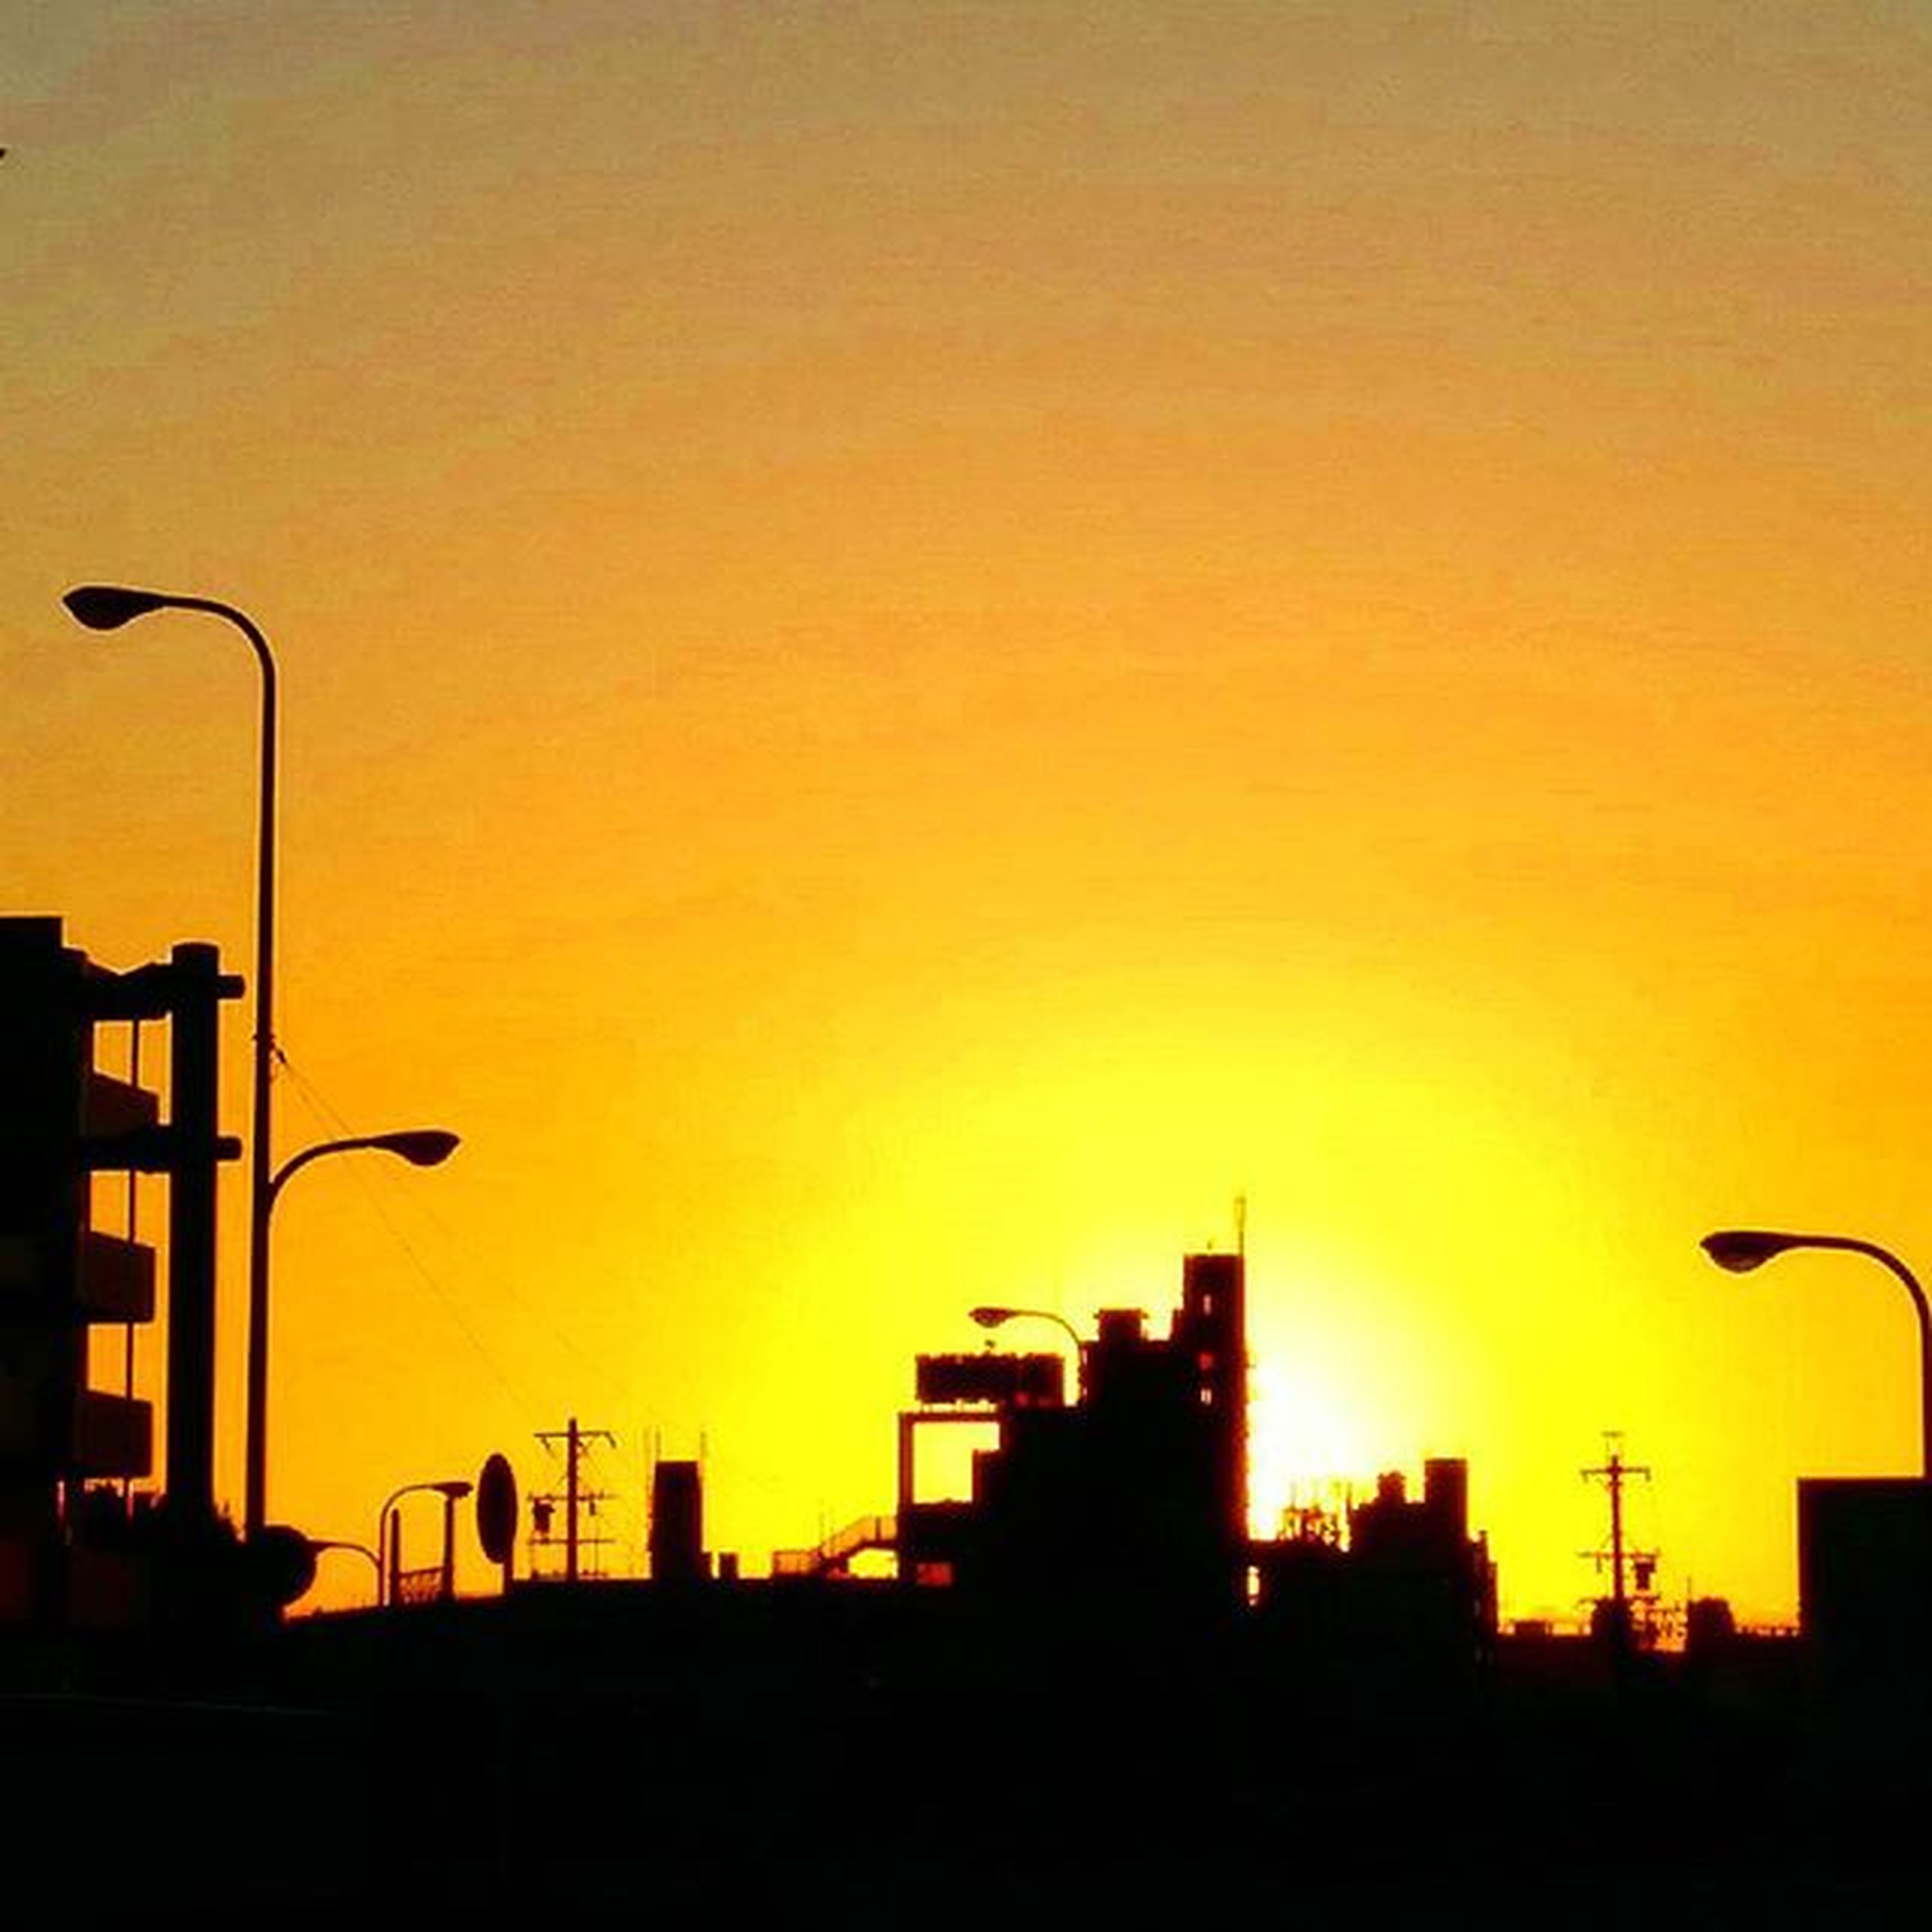 sunset, building exterior, architecture, built structure, silhouette, orange color, city, copy space, clear sky, street light, tower, building, low angle view, sky, sun, skyscraper, outdoors, communications tower, cityscape, tall - high